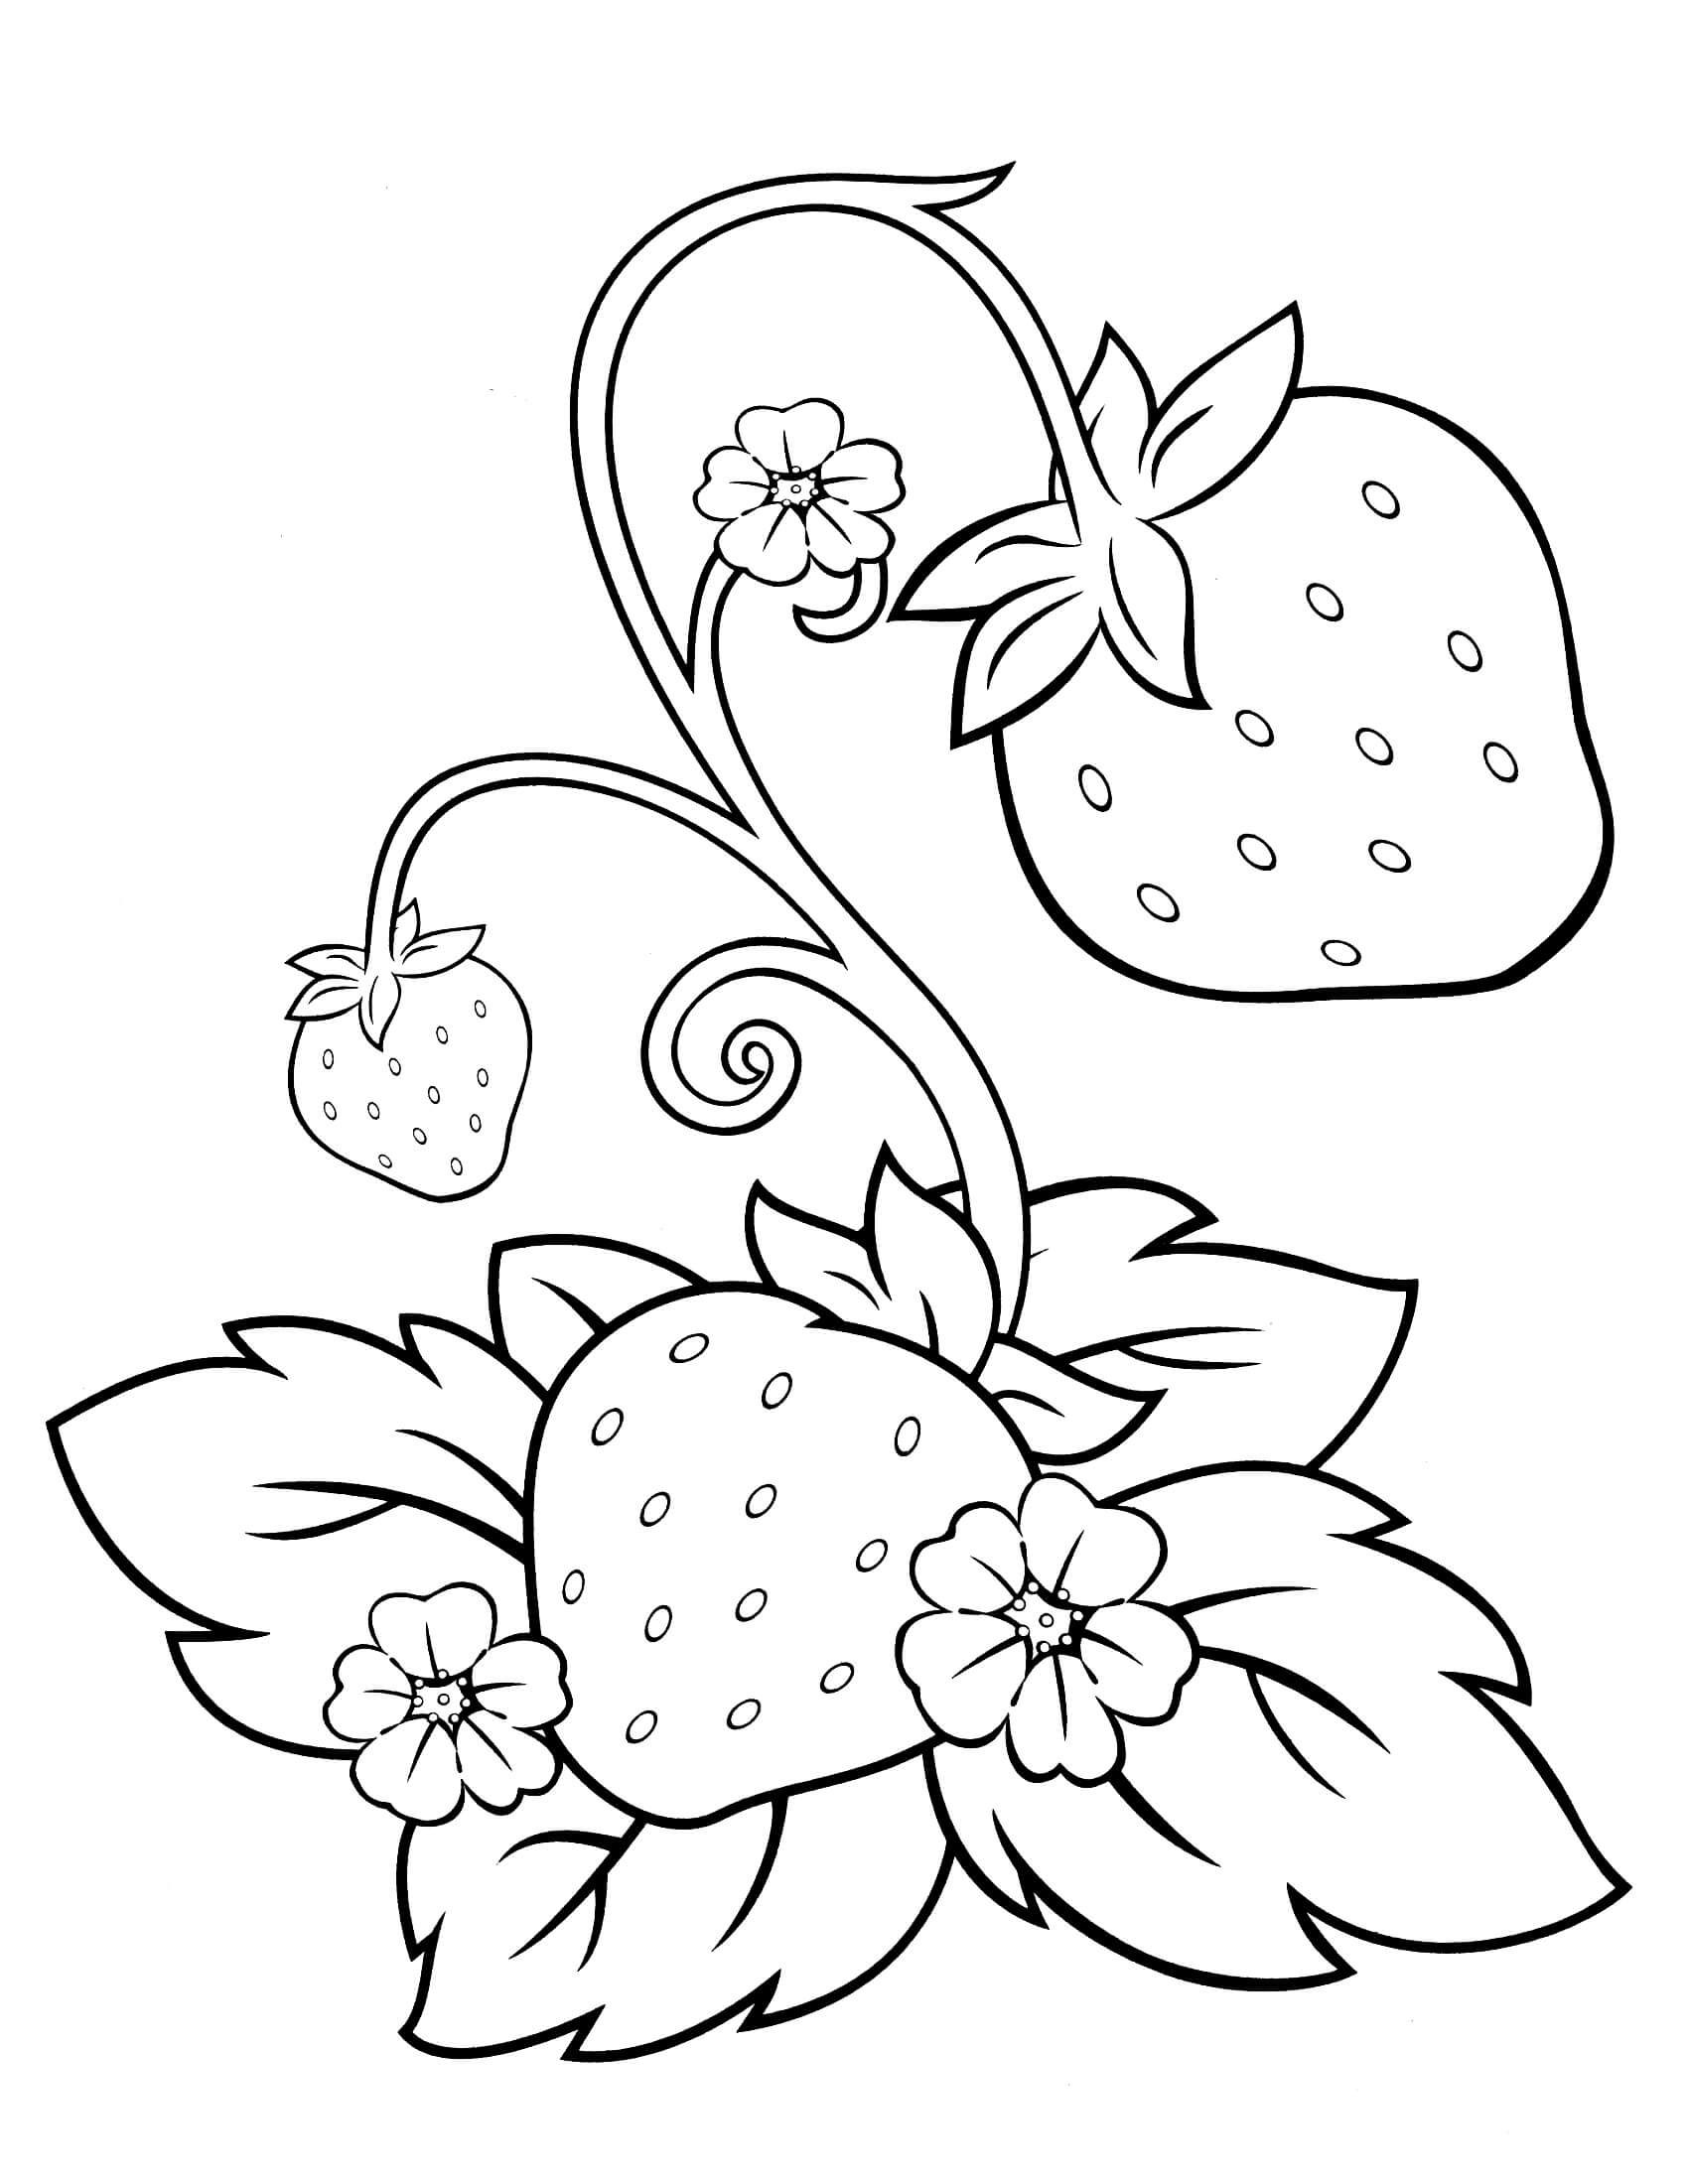 strawberry shortcake pictures to color strawberry shortcake 22 coloringcolorcom in 2020 with strawberry shortcake color to pictures